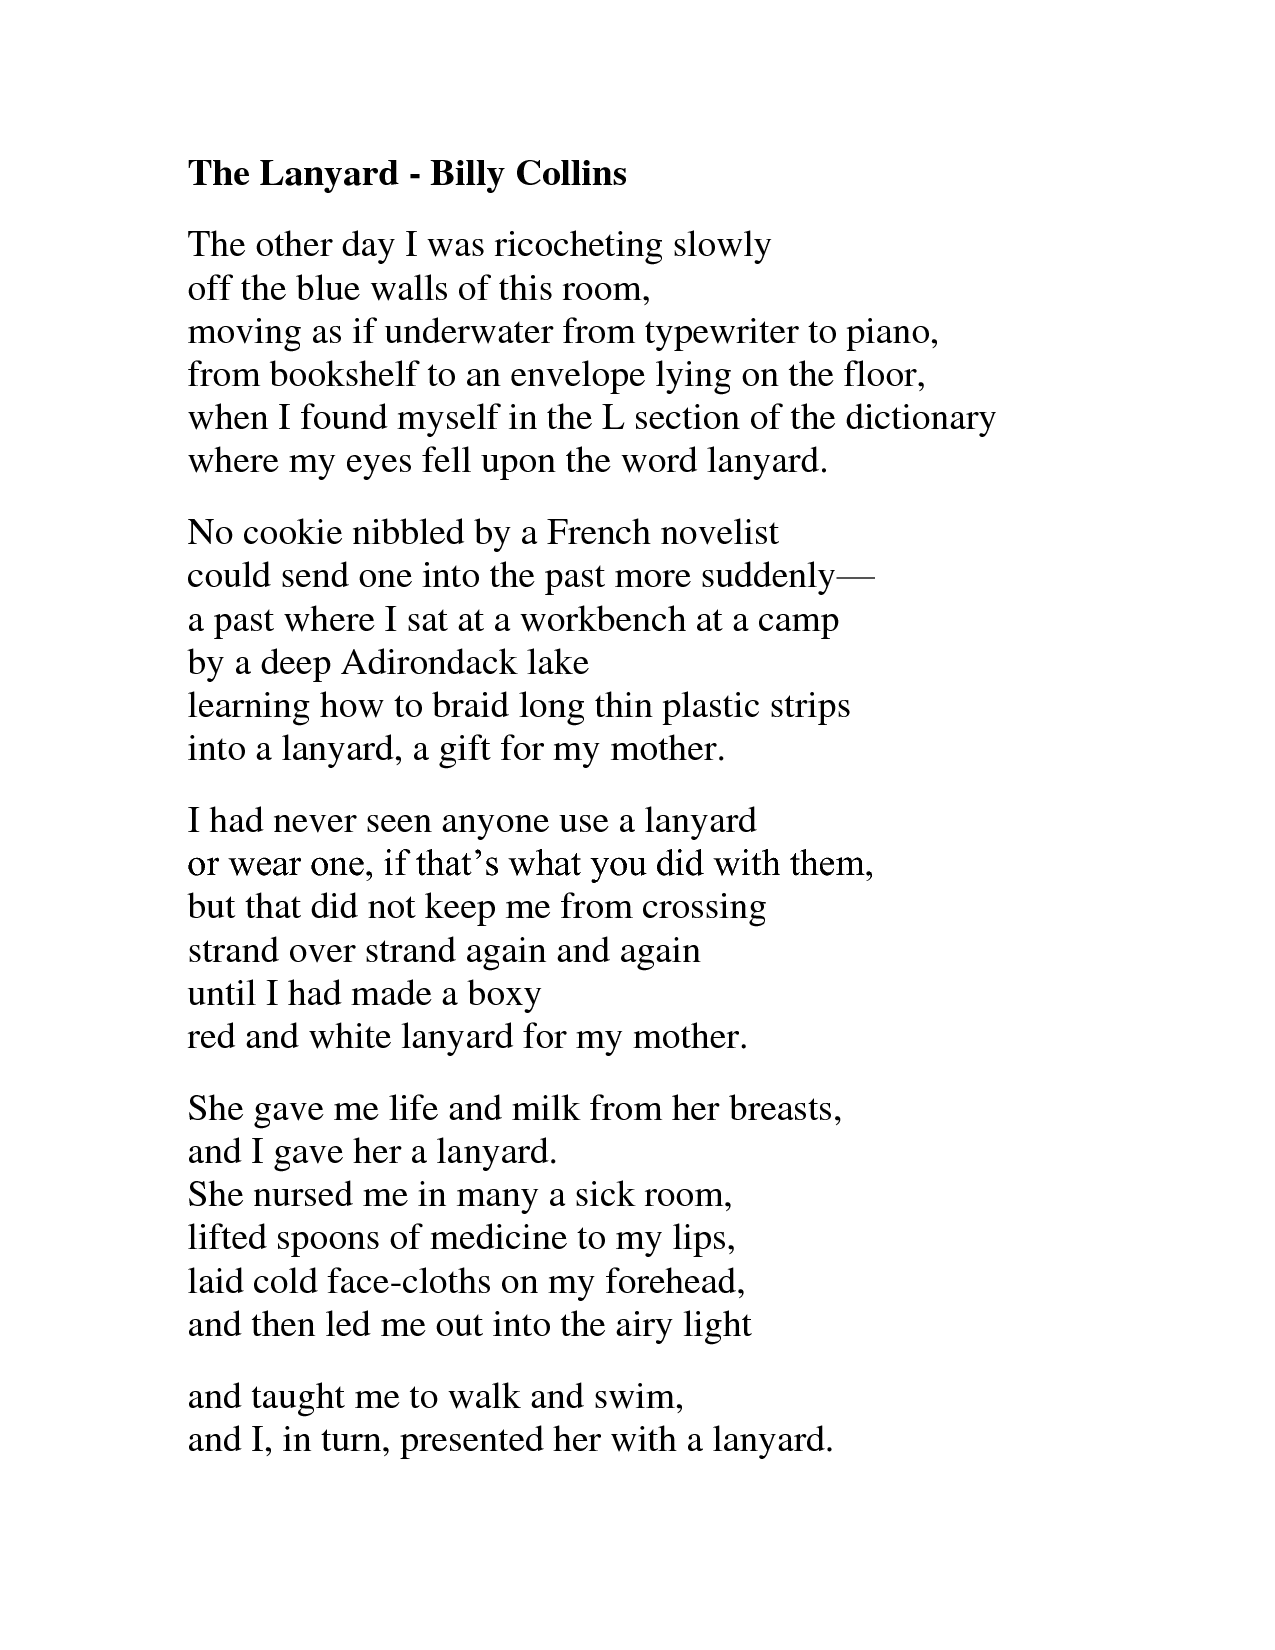 the history teacher billy collins essay Introduction to poetry by billy collins i ask them to take a poem and hold it up to the light like a color slide or press an ear against its hive i say drop a mouse into a poem and watch him probe his way out, or walk inside the poem's room.